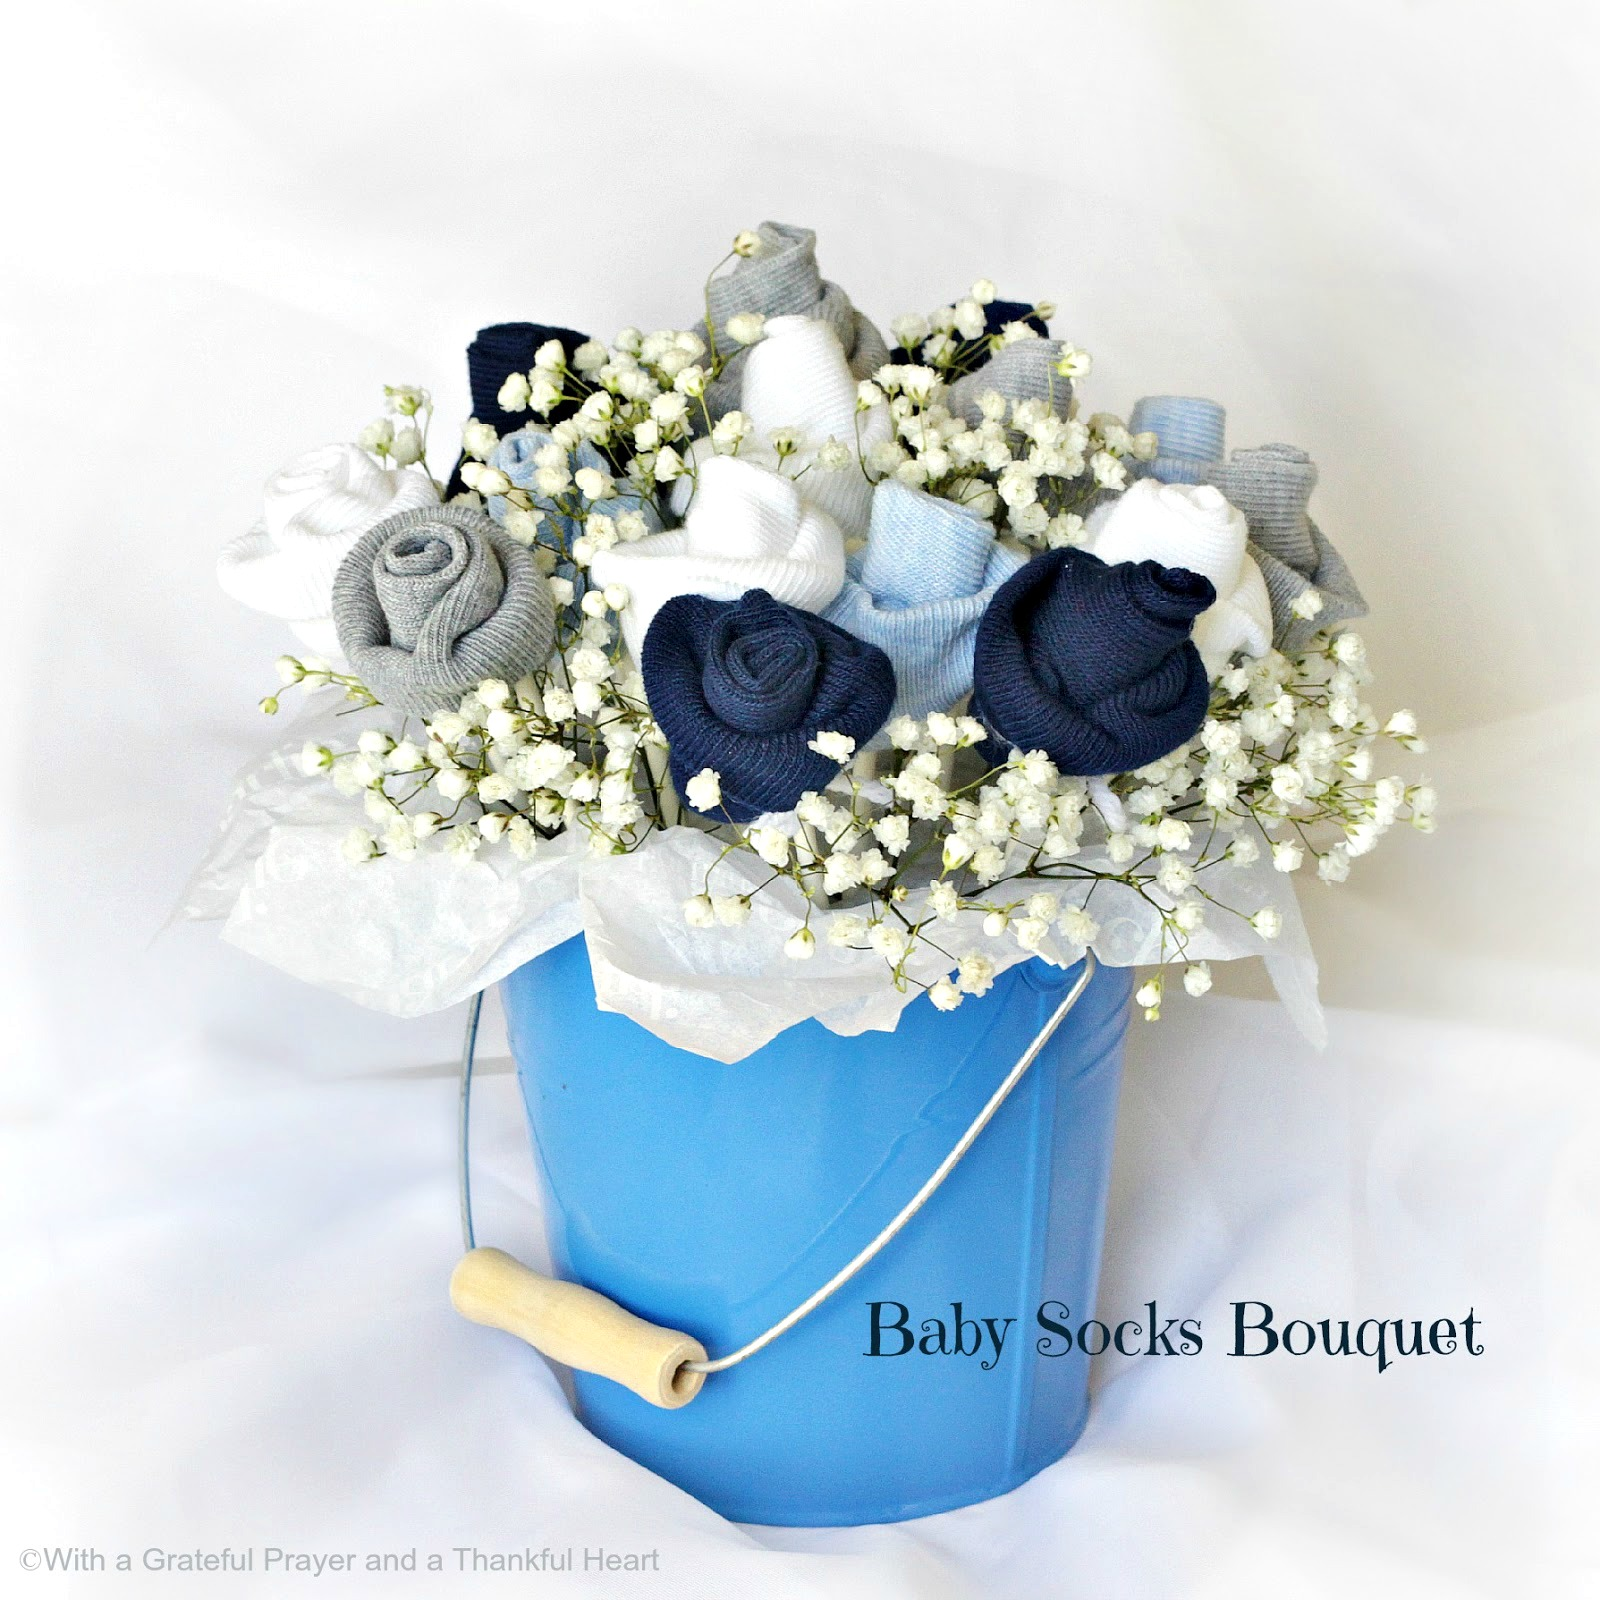 ... Baby Shower Flower Arrangements Baby Socks Rose Bud Flower Bouquet  Grateful Prayer Thankful Heart ...